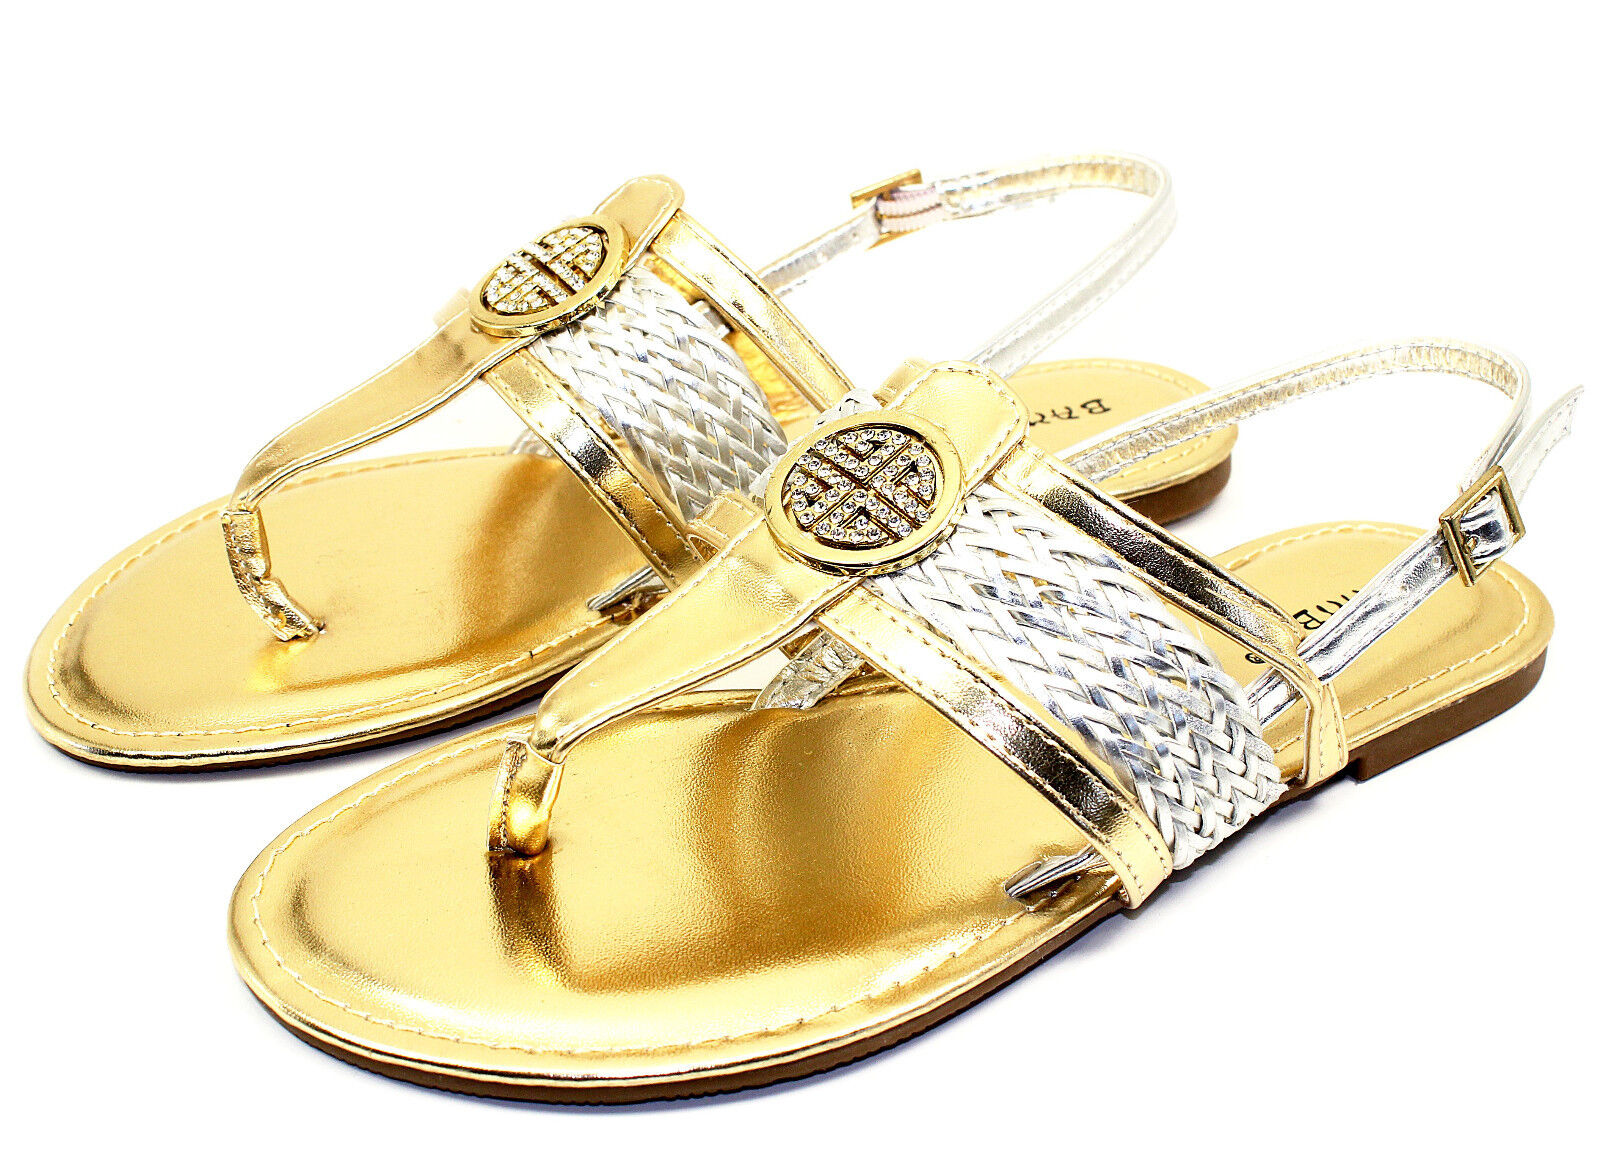 Nadya-15 Gladiator Buckles Shoes Comfort Flats Strappy Sandals Women Shoes Buckles Gold 6 2bc84e